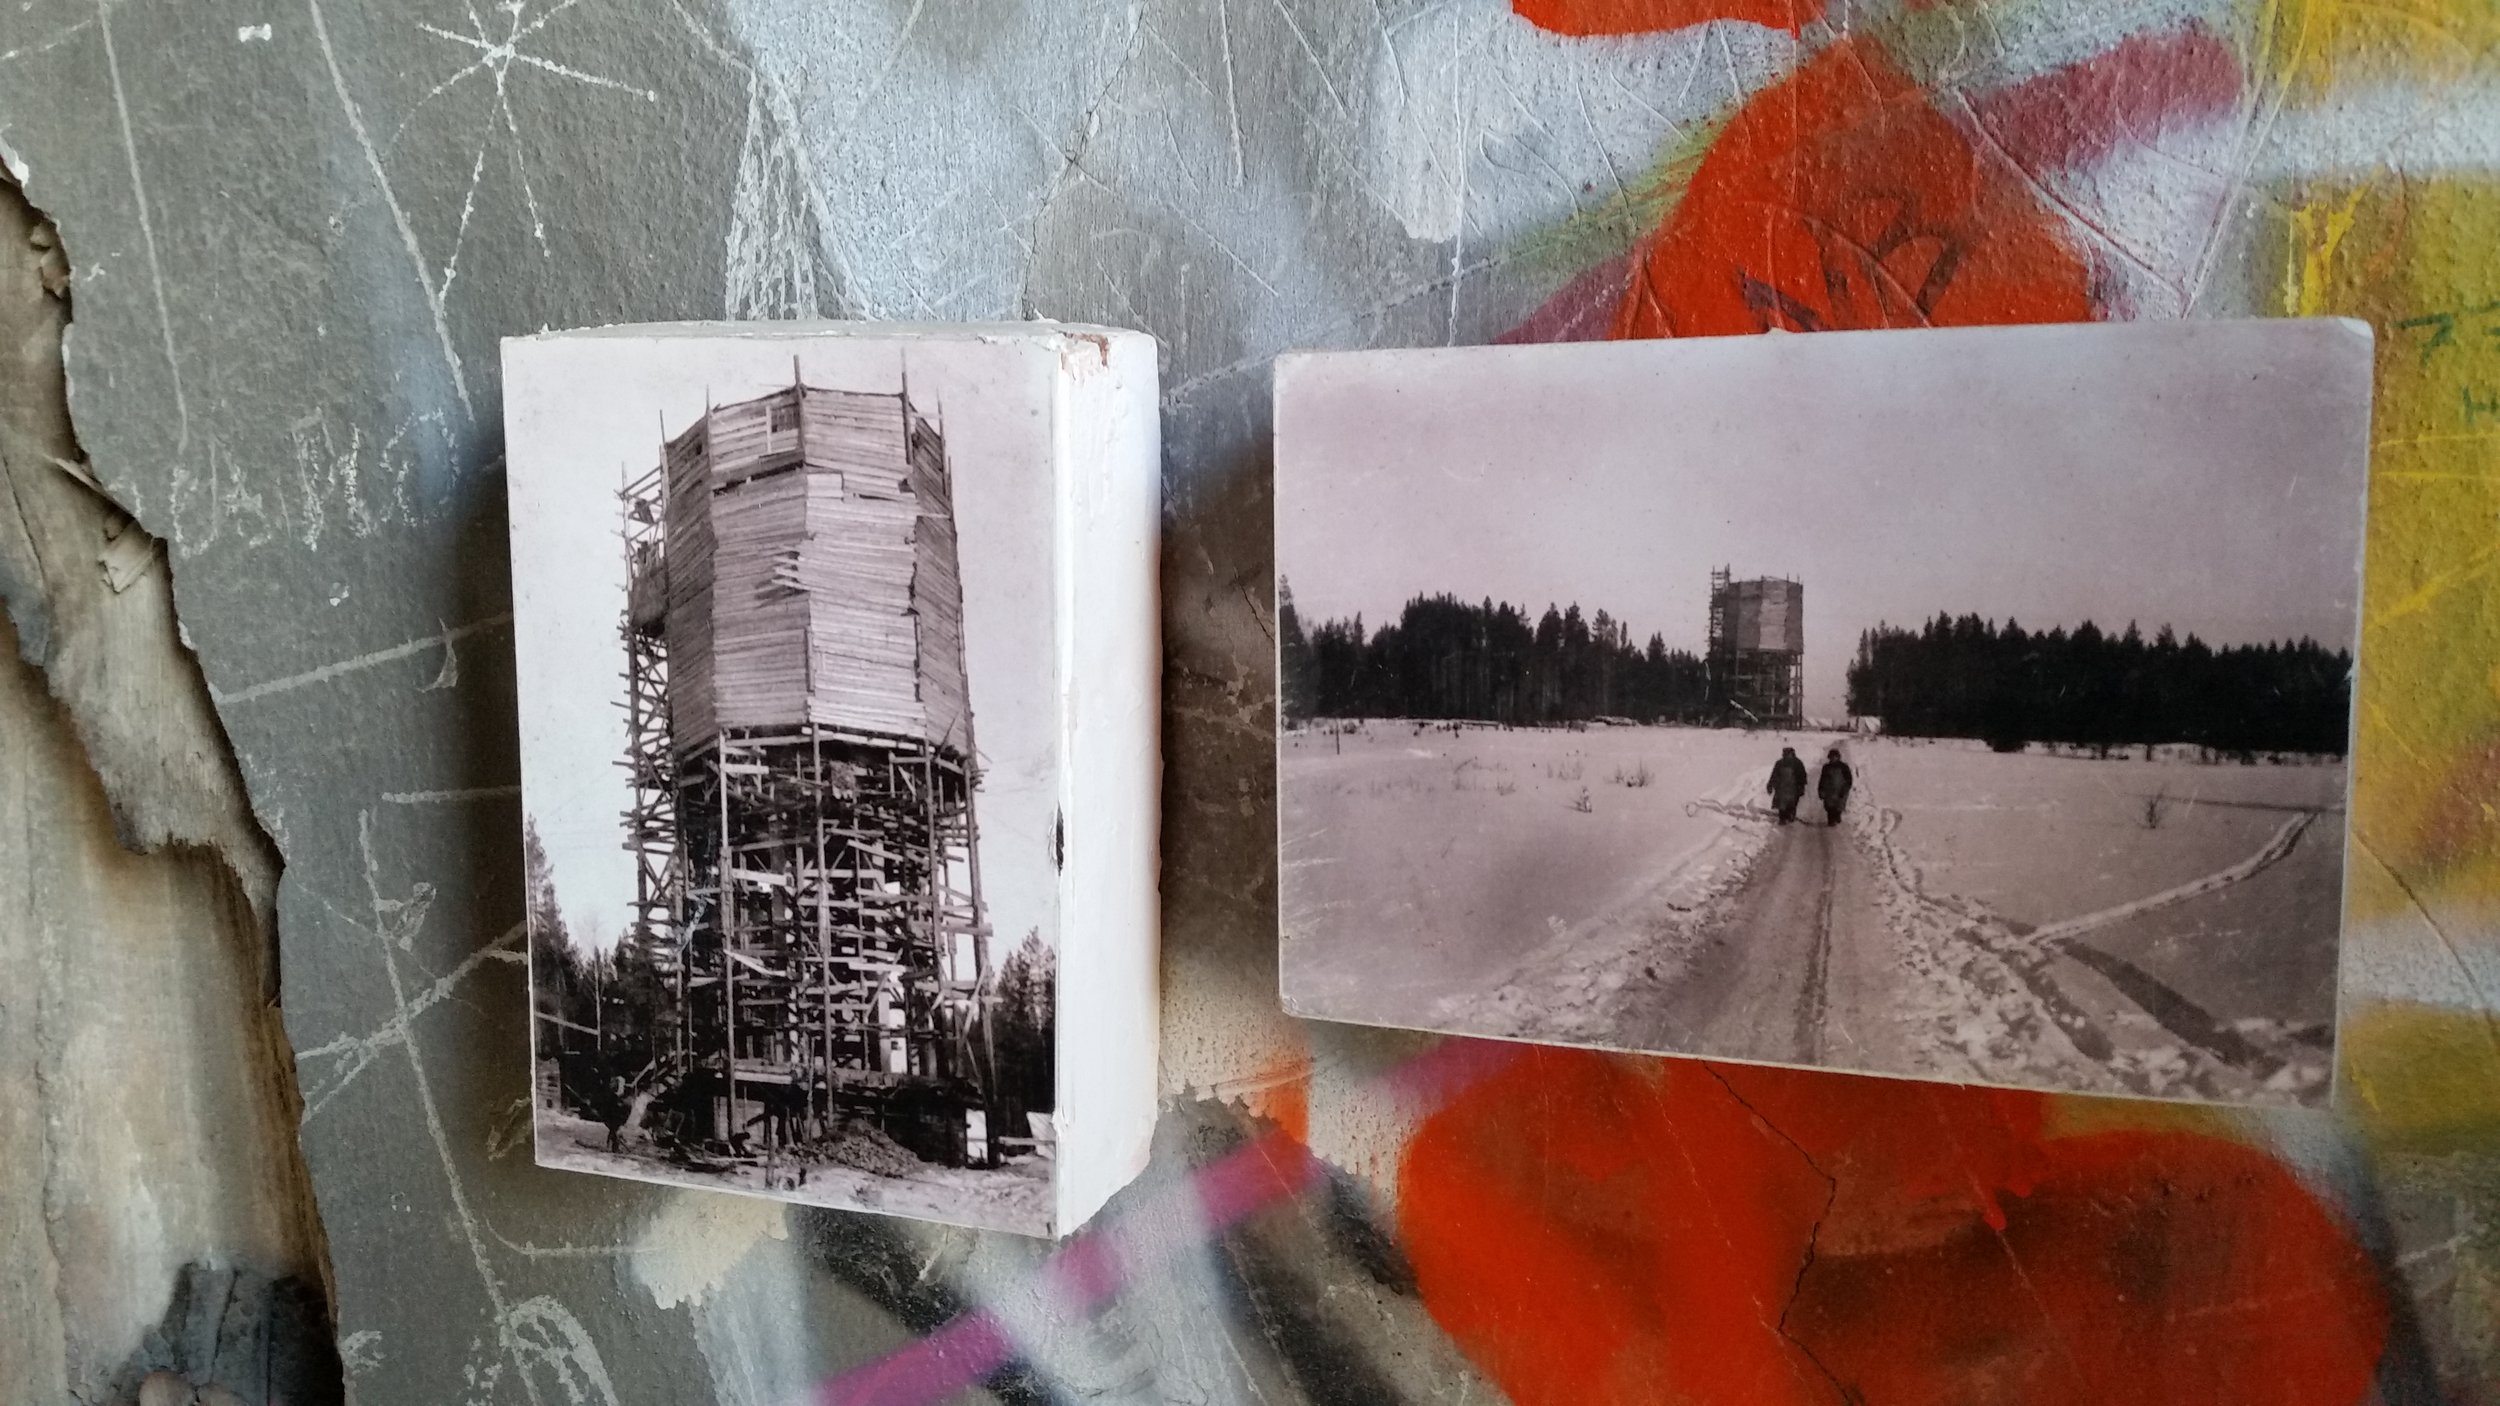 The architects who are working to restore the tower found old photographs of its construction and hung them on the graffiti-coveraed walls.